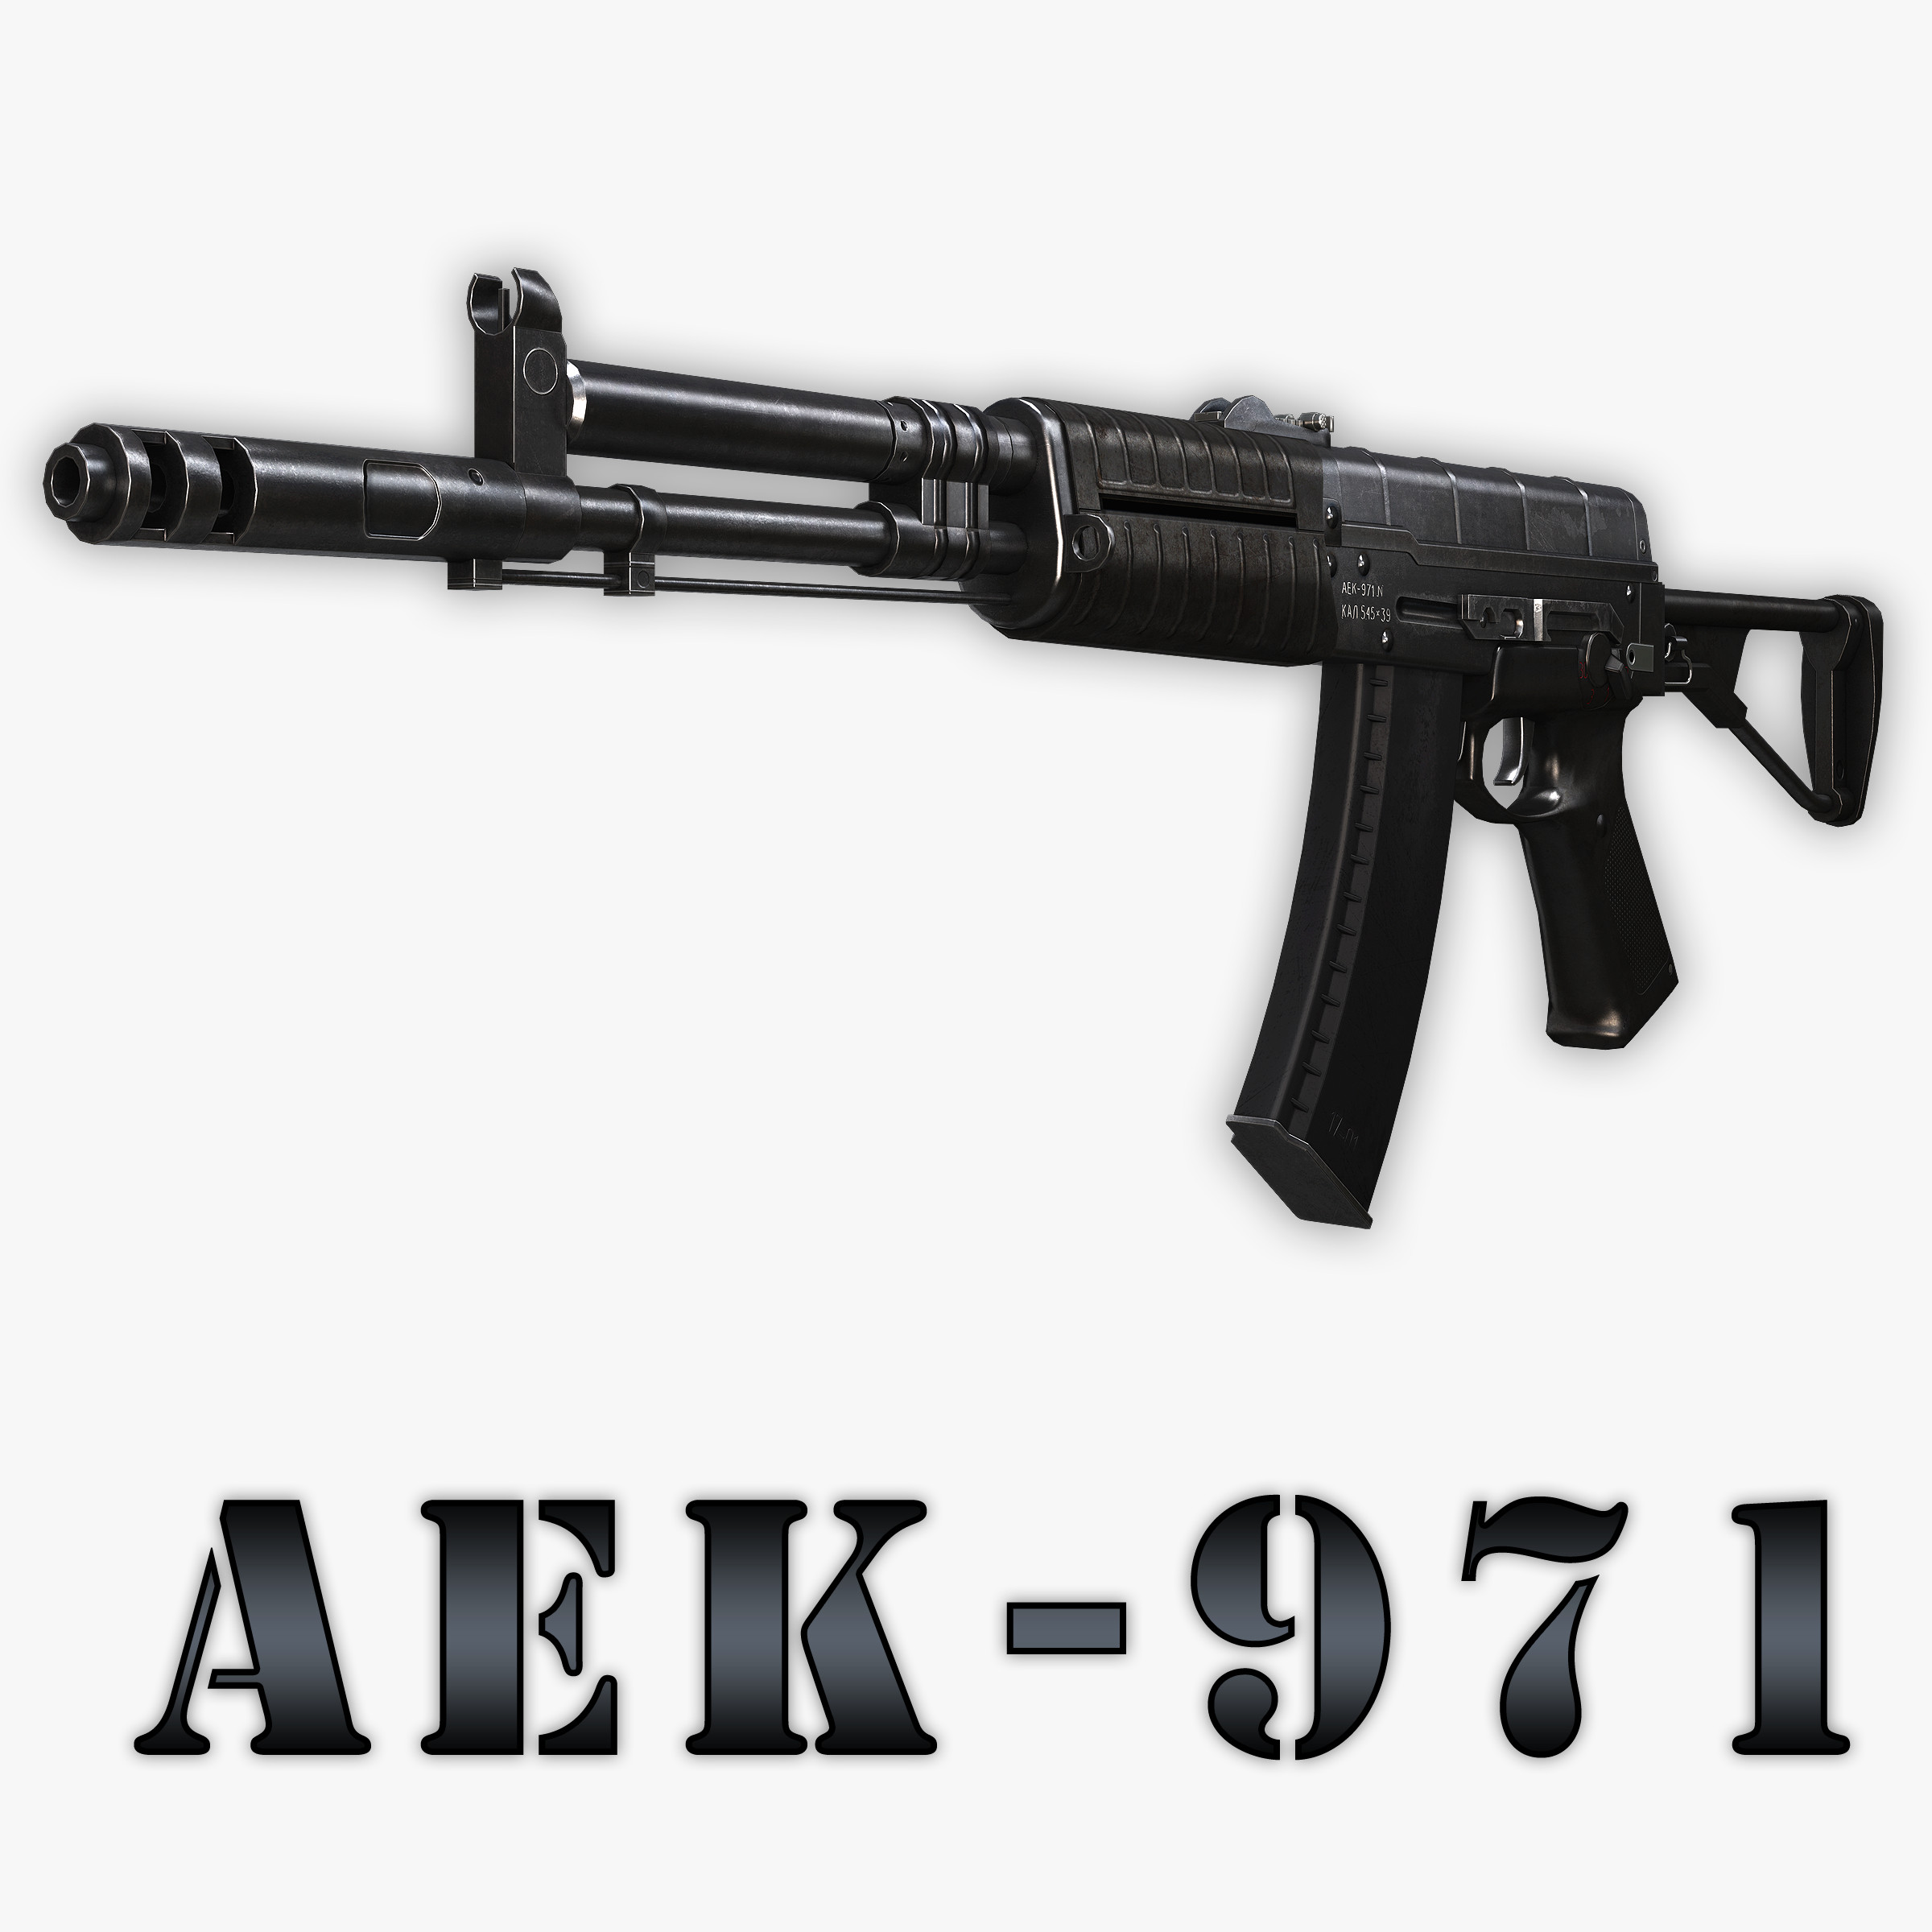 AEK-971 Backgrounds on Wallpapers Vista